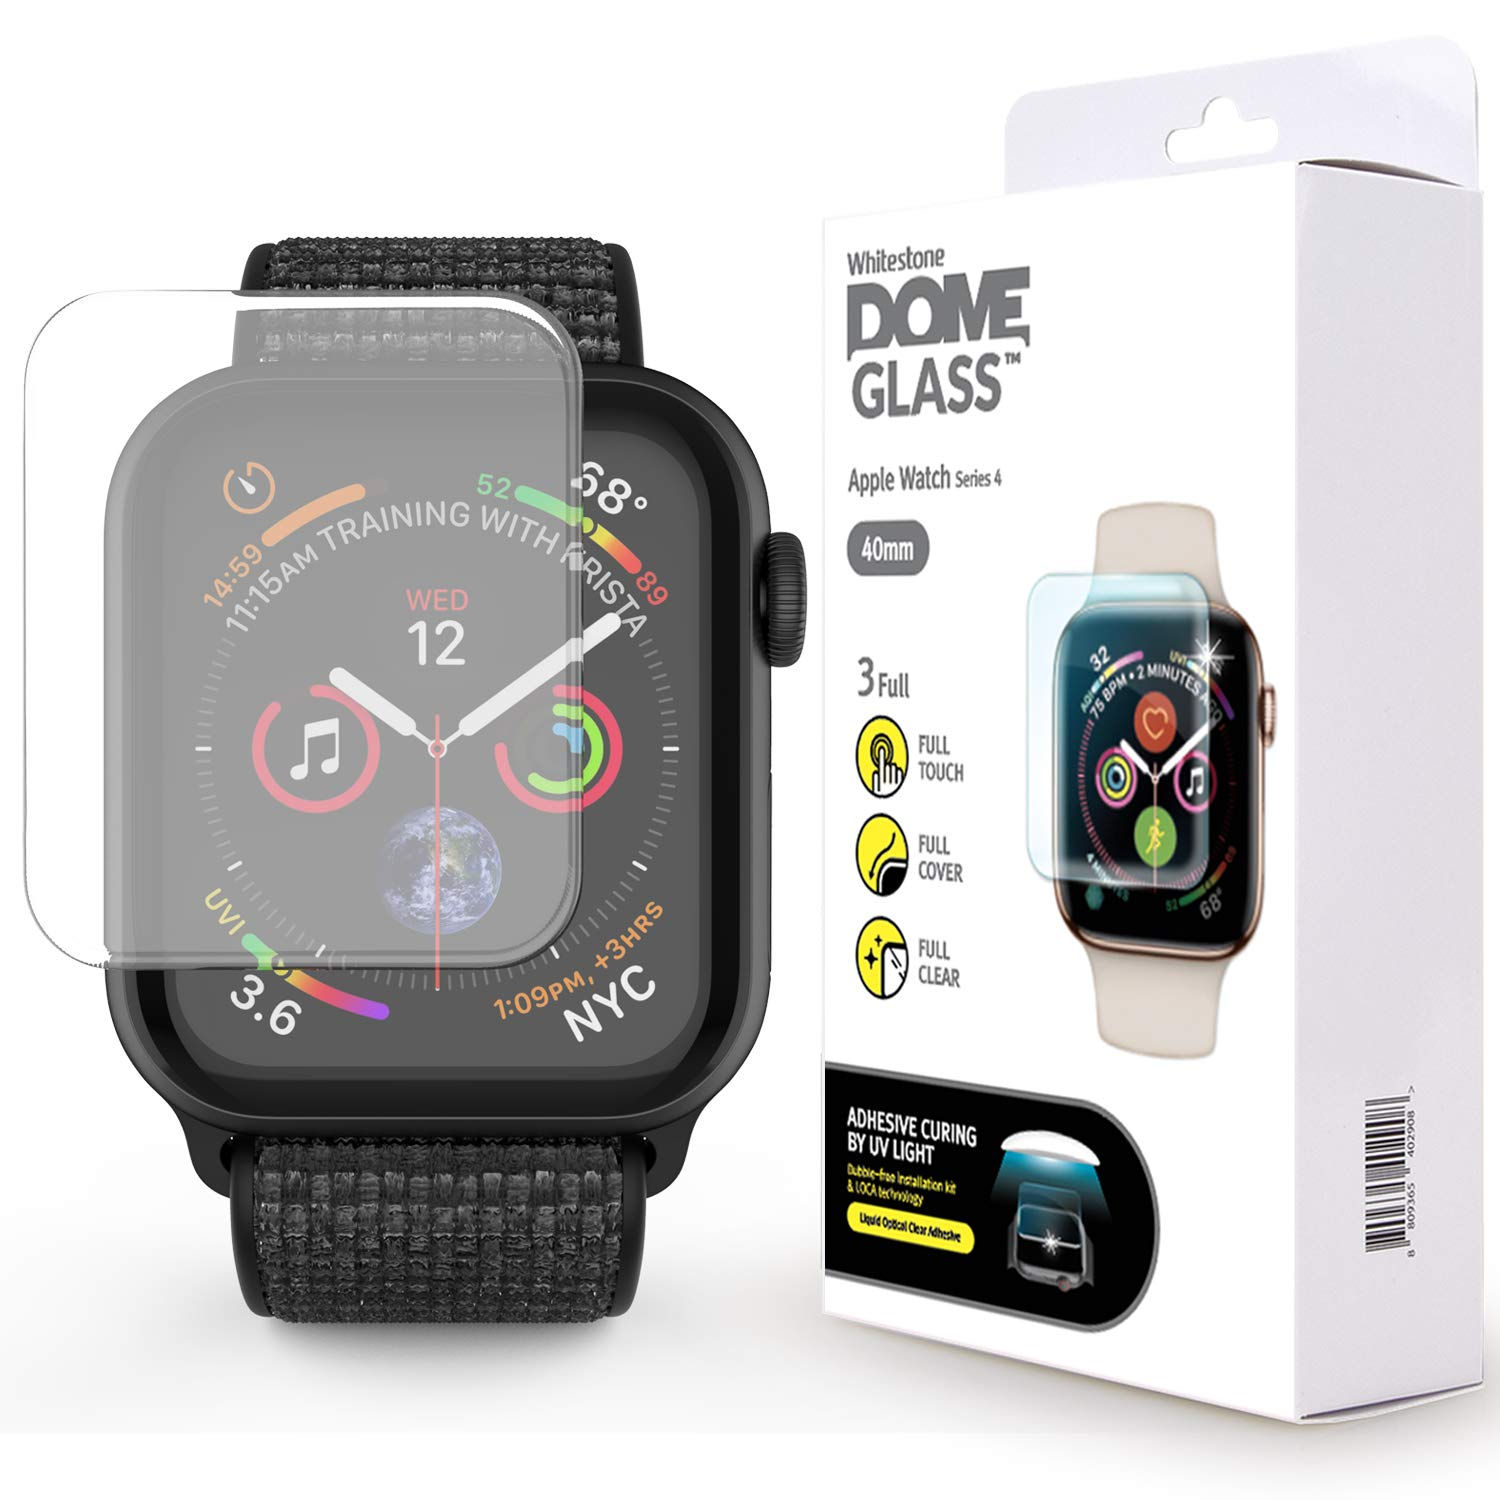 Apple Watch 40mm Screen Protector, [DOME GLASS] Liquid Adhesive for Full Coverage Tempered Glass [NO UV Light Included] and Protection by Whitestone for The Apple Watch 4 - Replacement Kit ONLY by Dome Glass